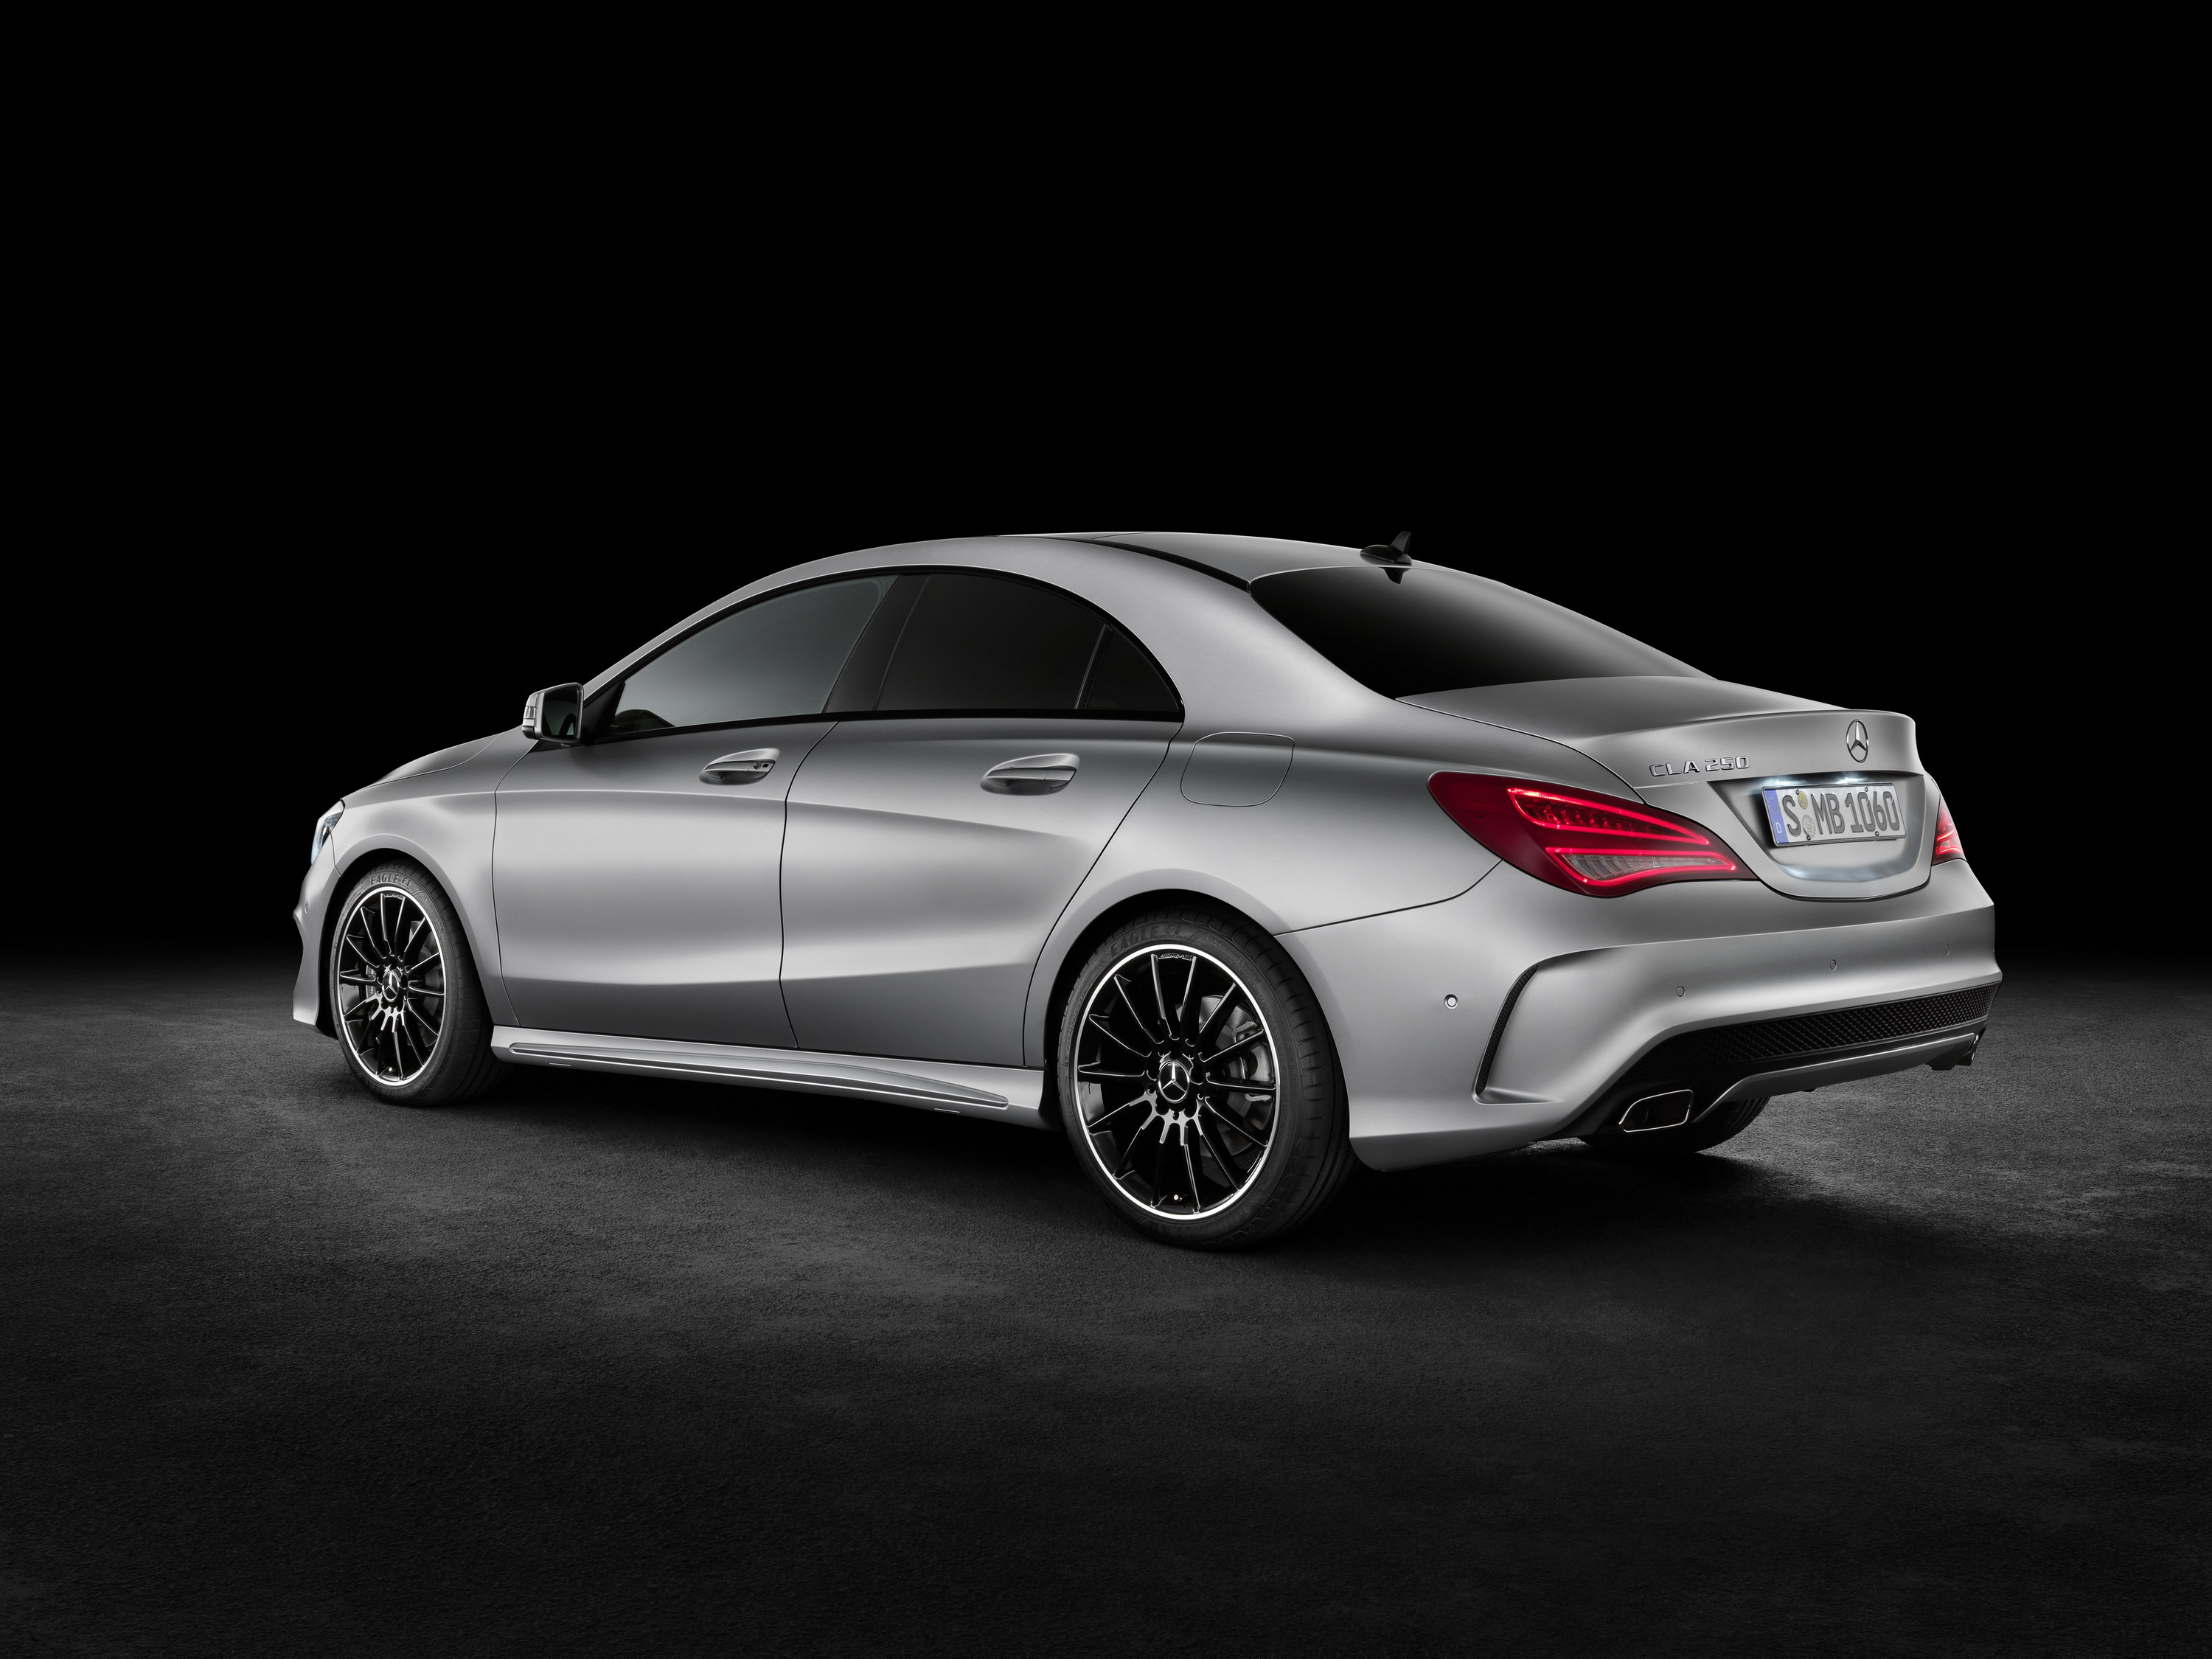 com brand sport optional package with the myautoworld benz mercedes autonews introduces cla new